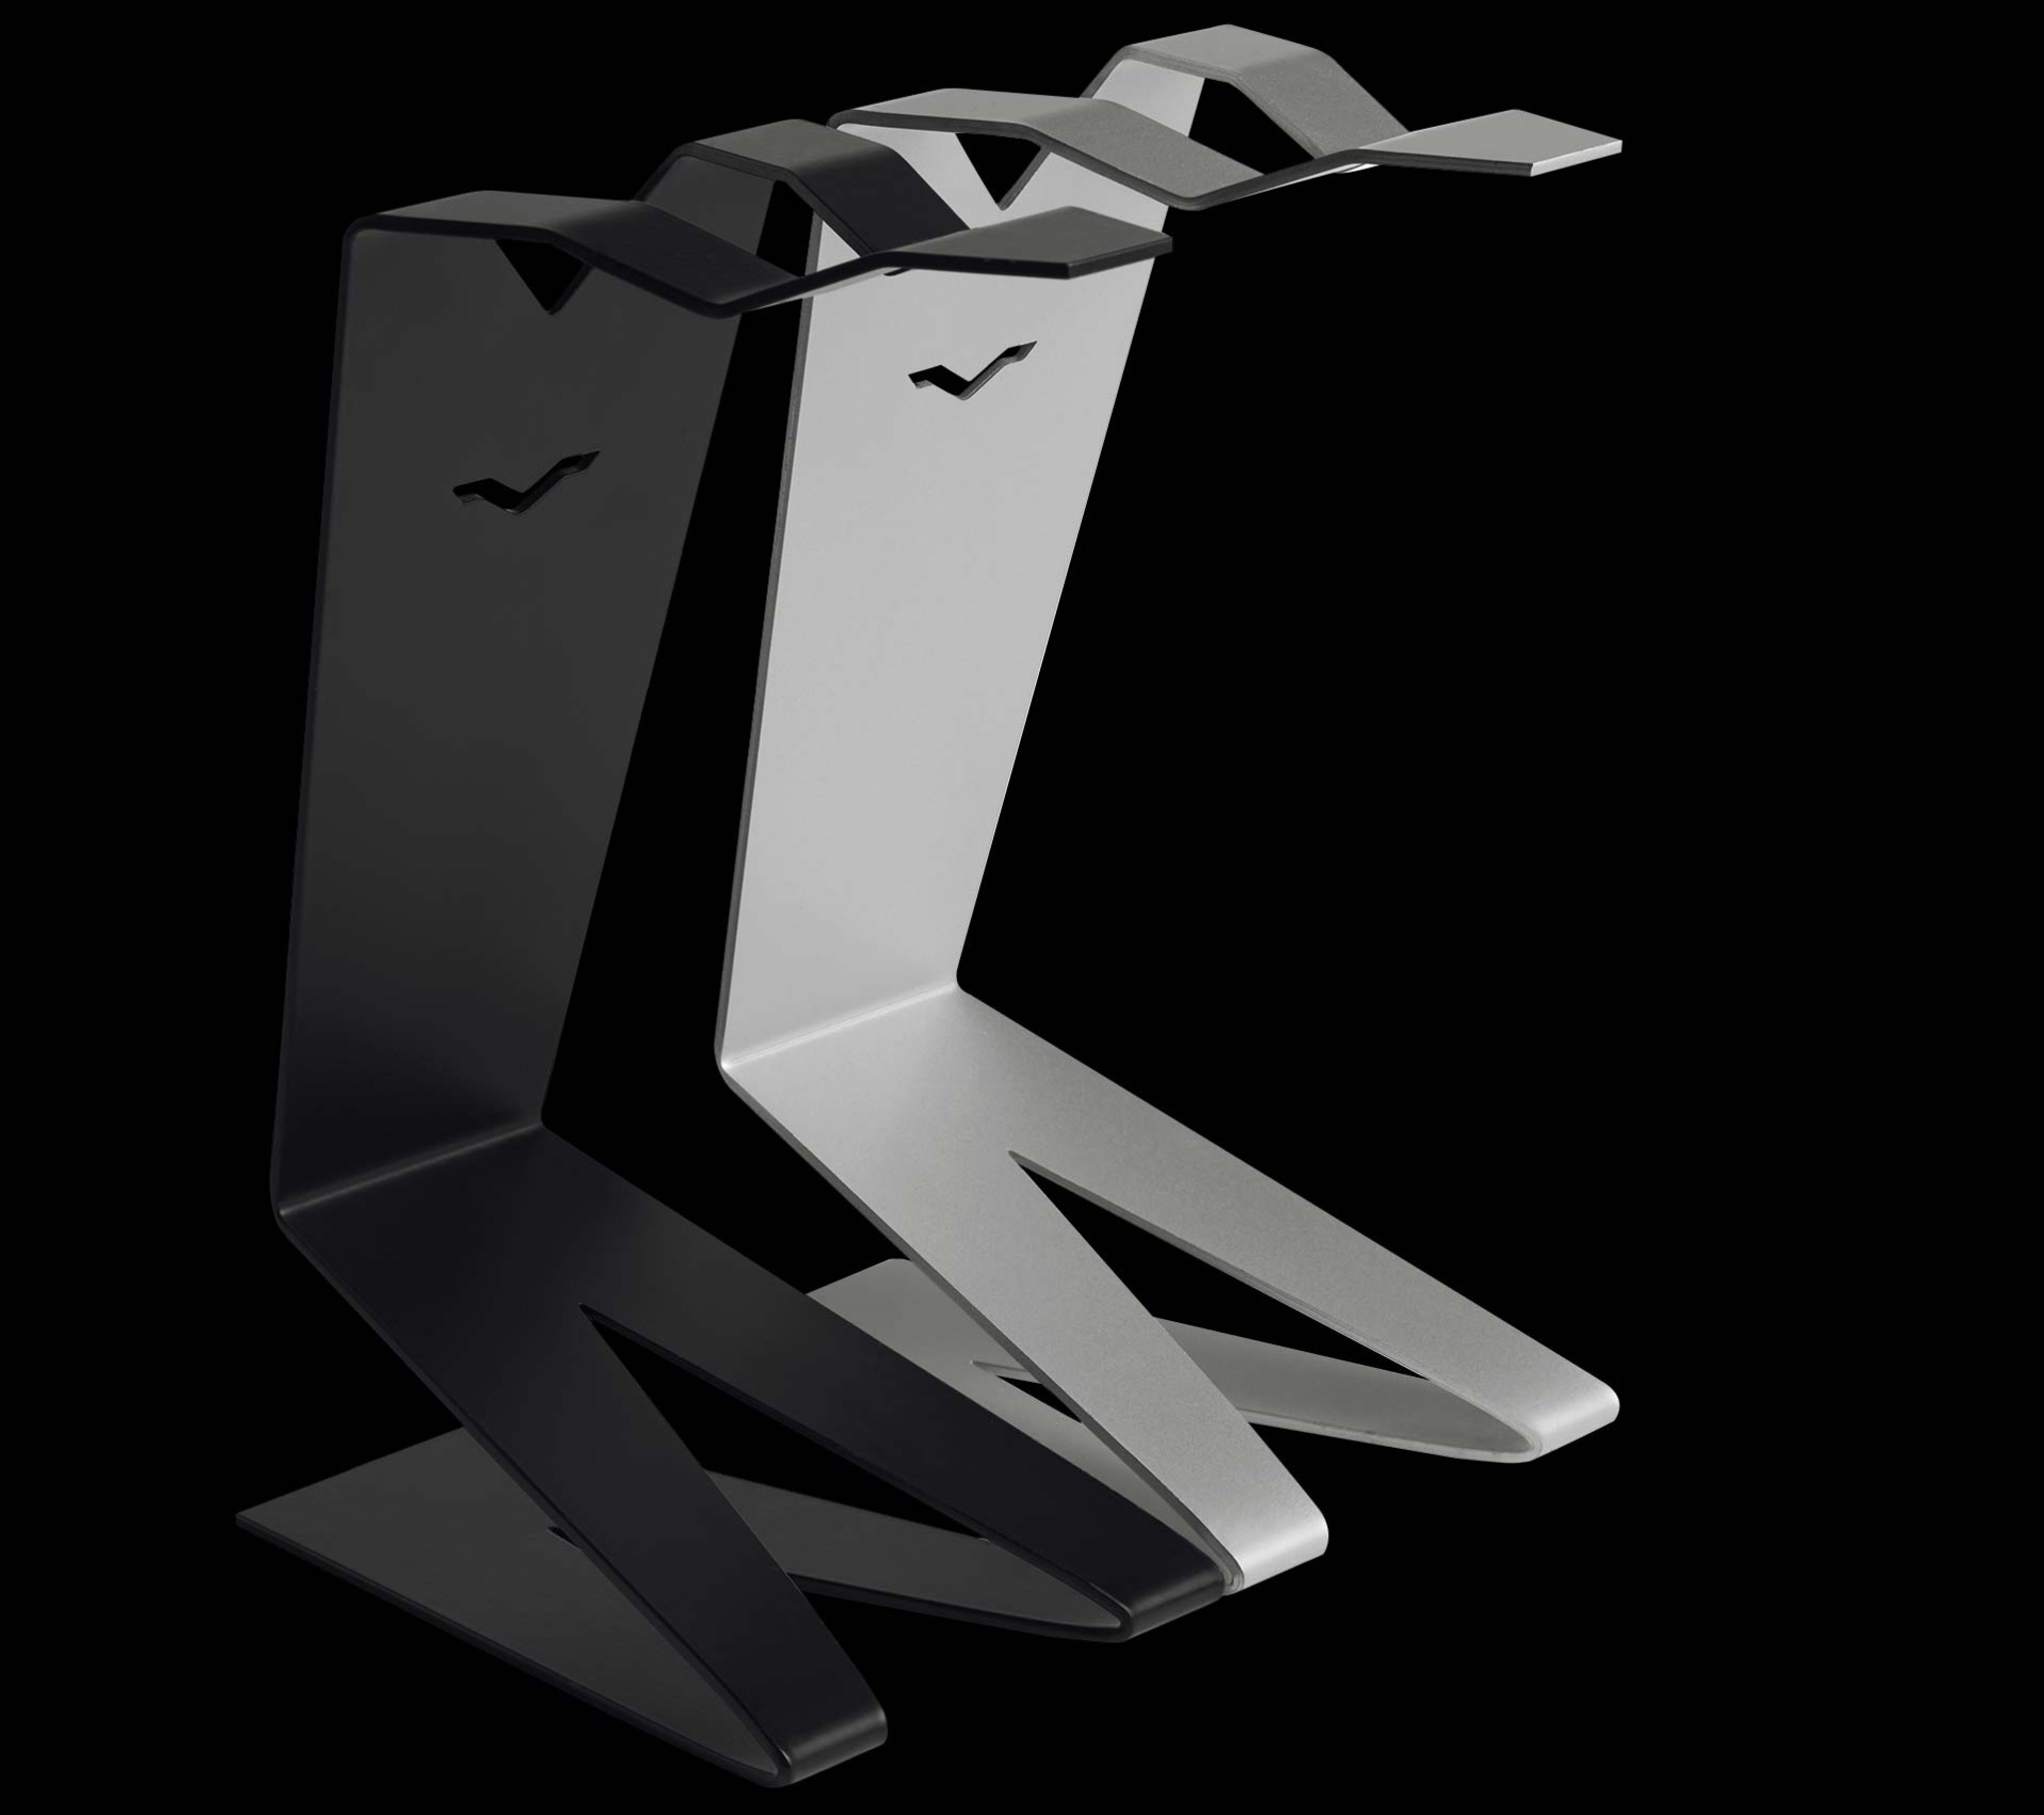 V-MAN Object Holder in Black and Steel